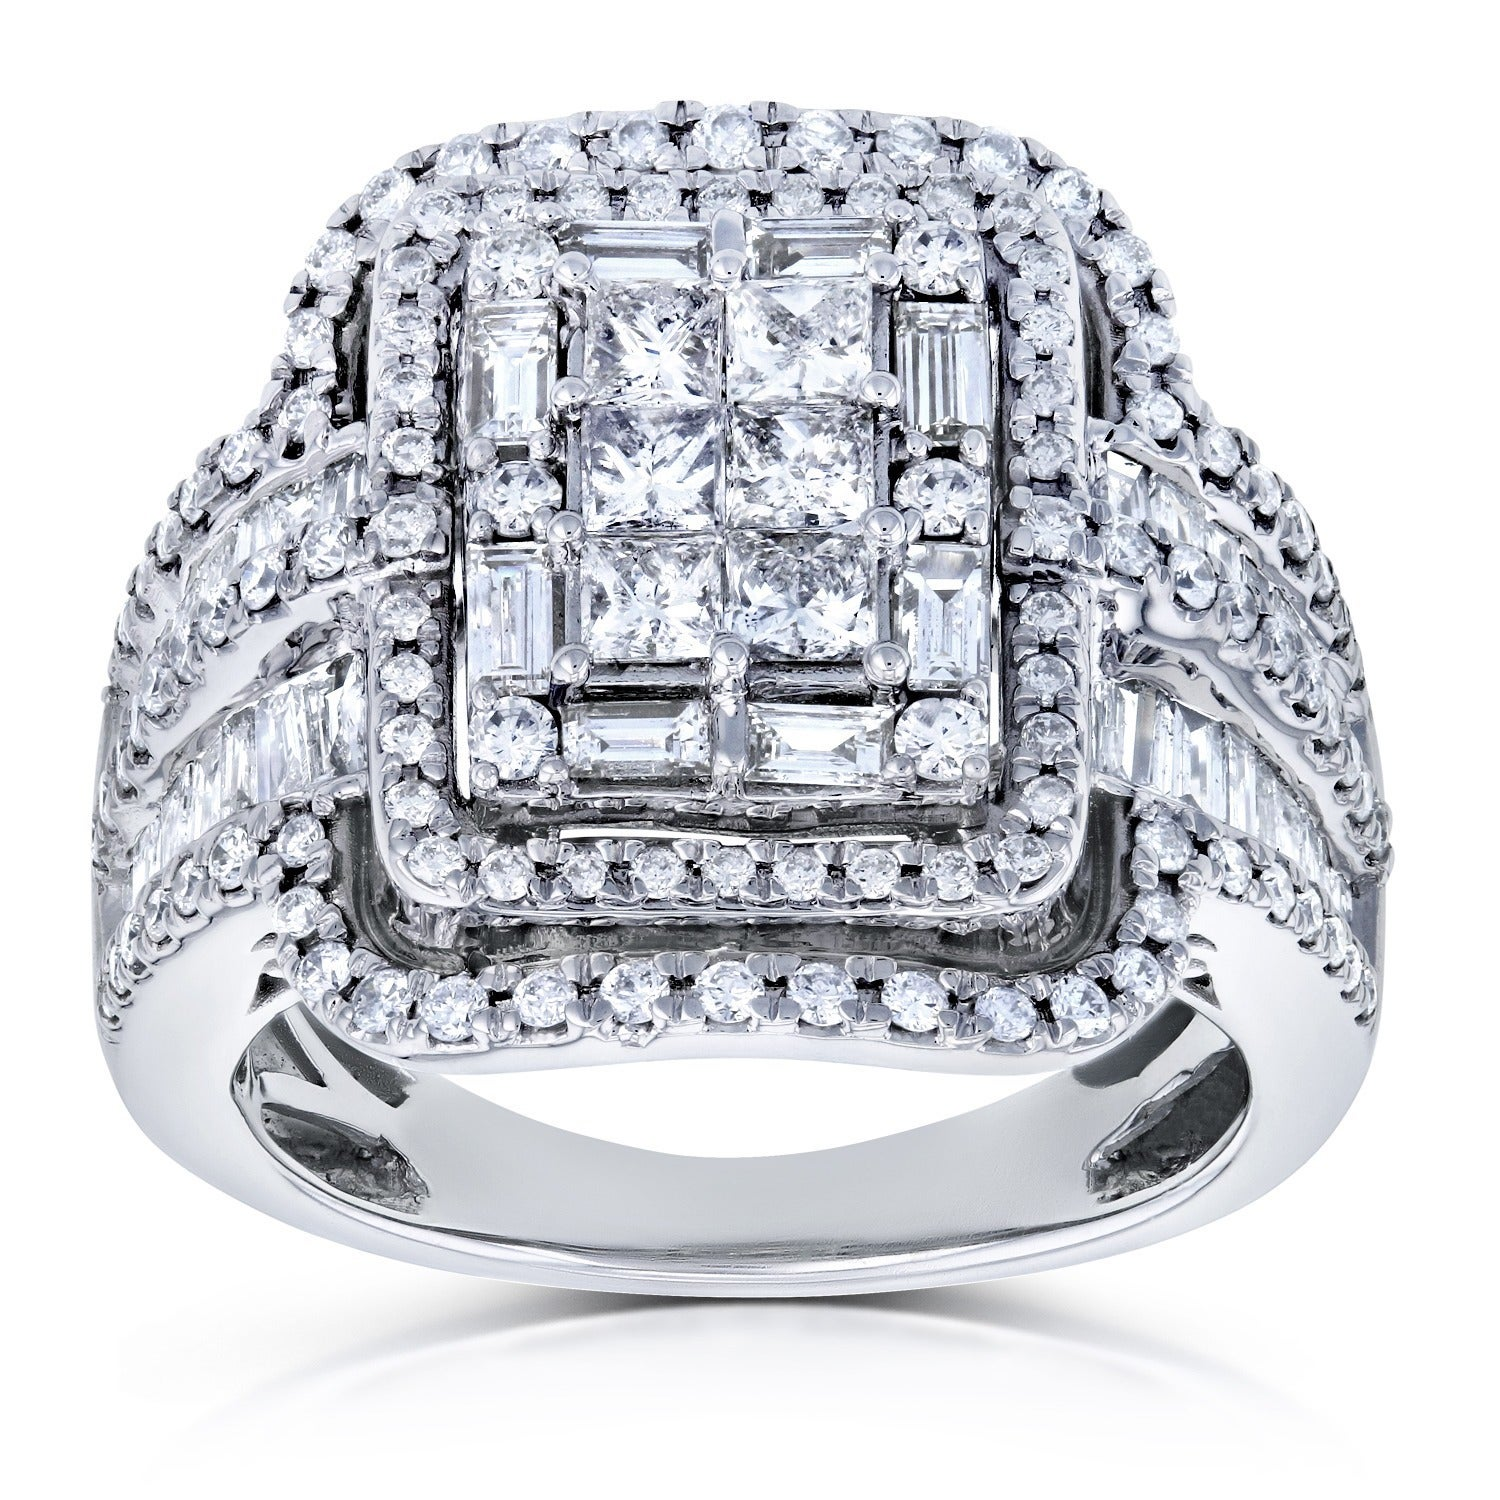 Shop Annello By Kobelli 14k White Gold 2ct Tdw Diamond Princess Cut Halo Engagement Ring Overstock 12991614